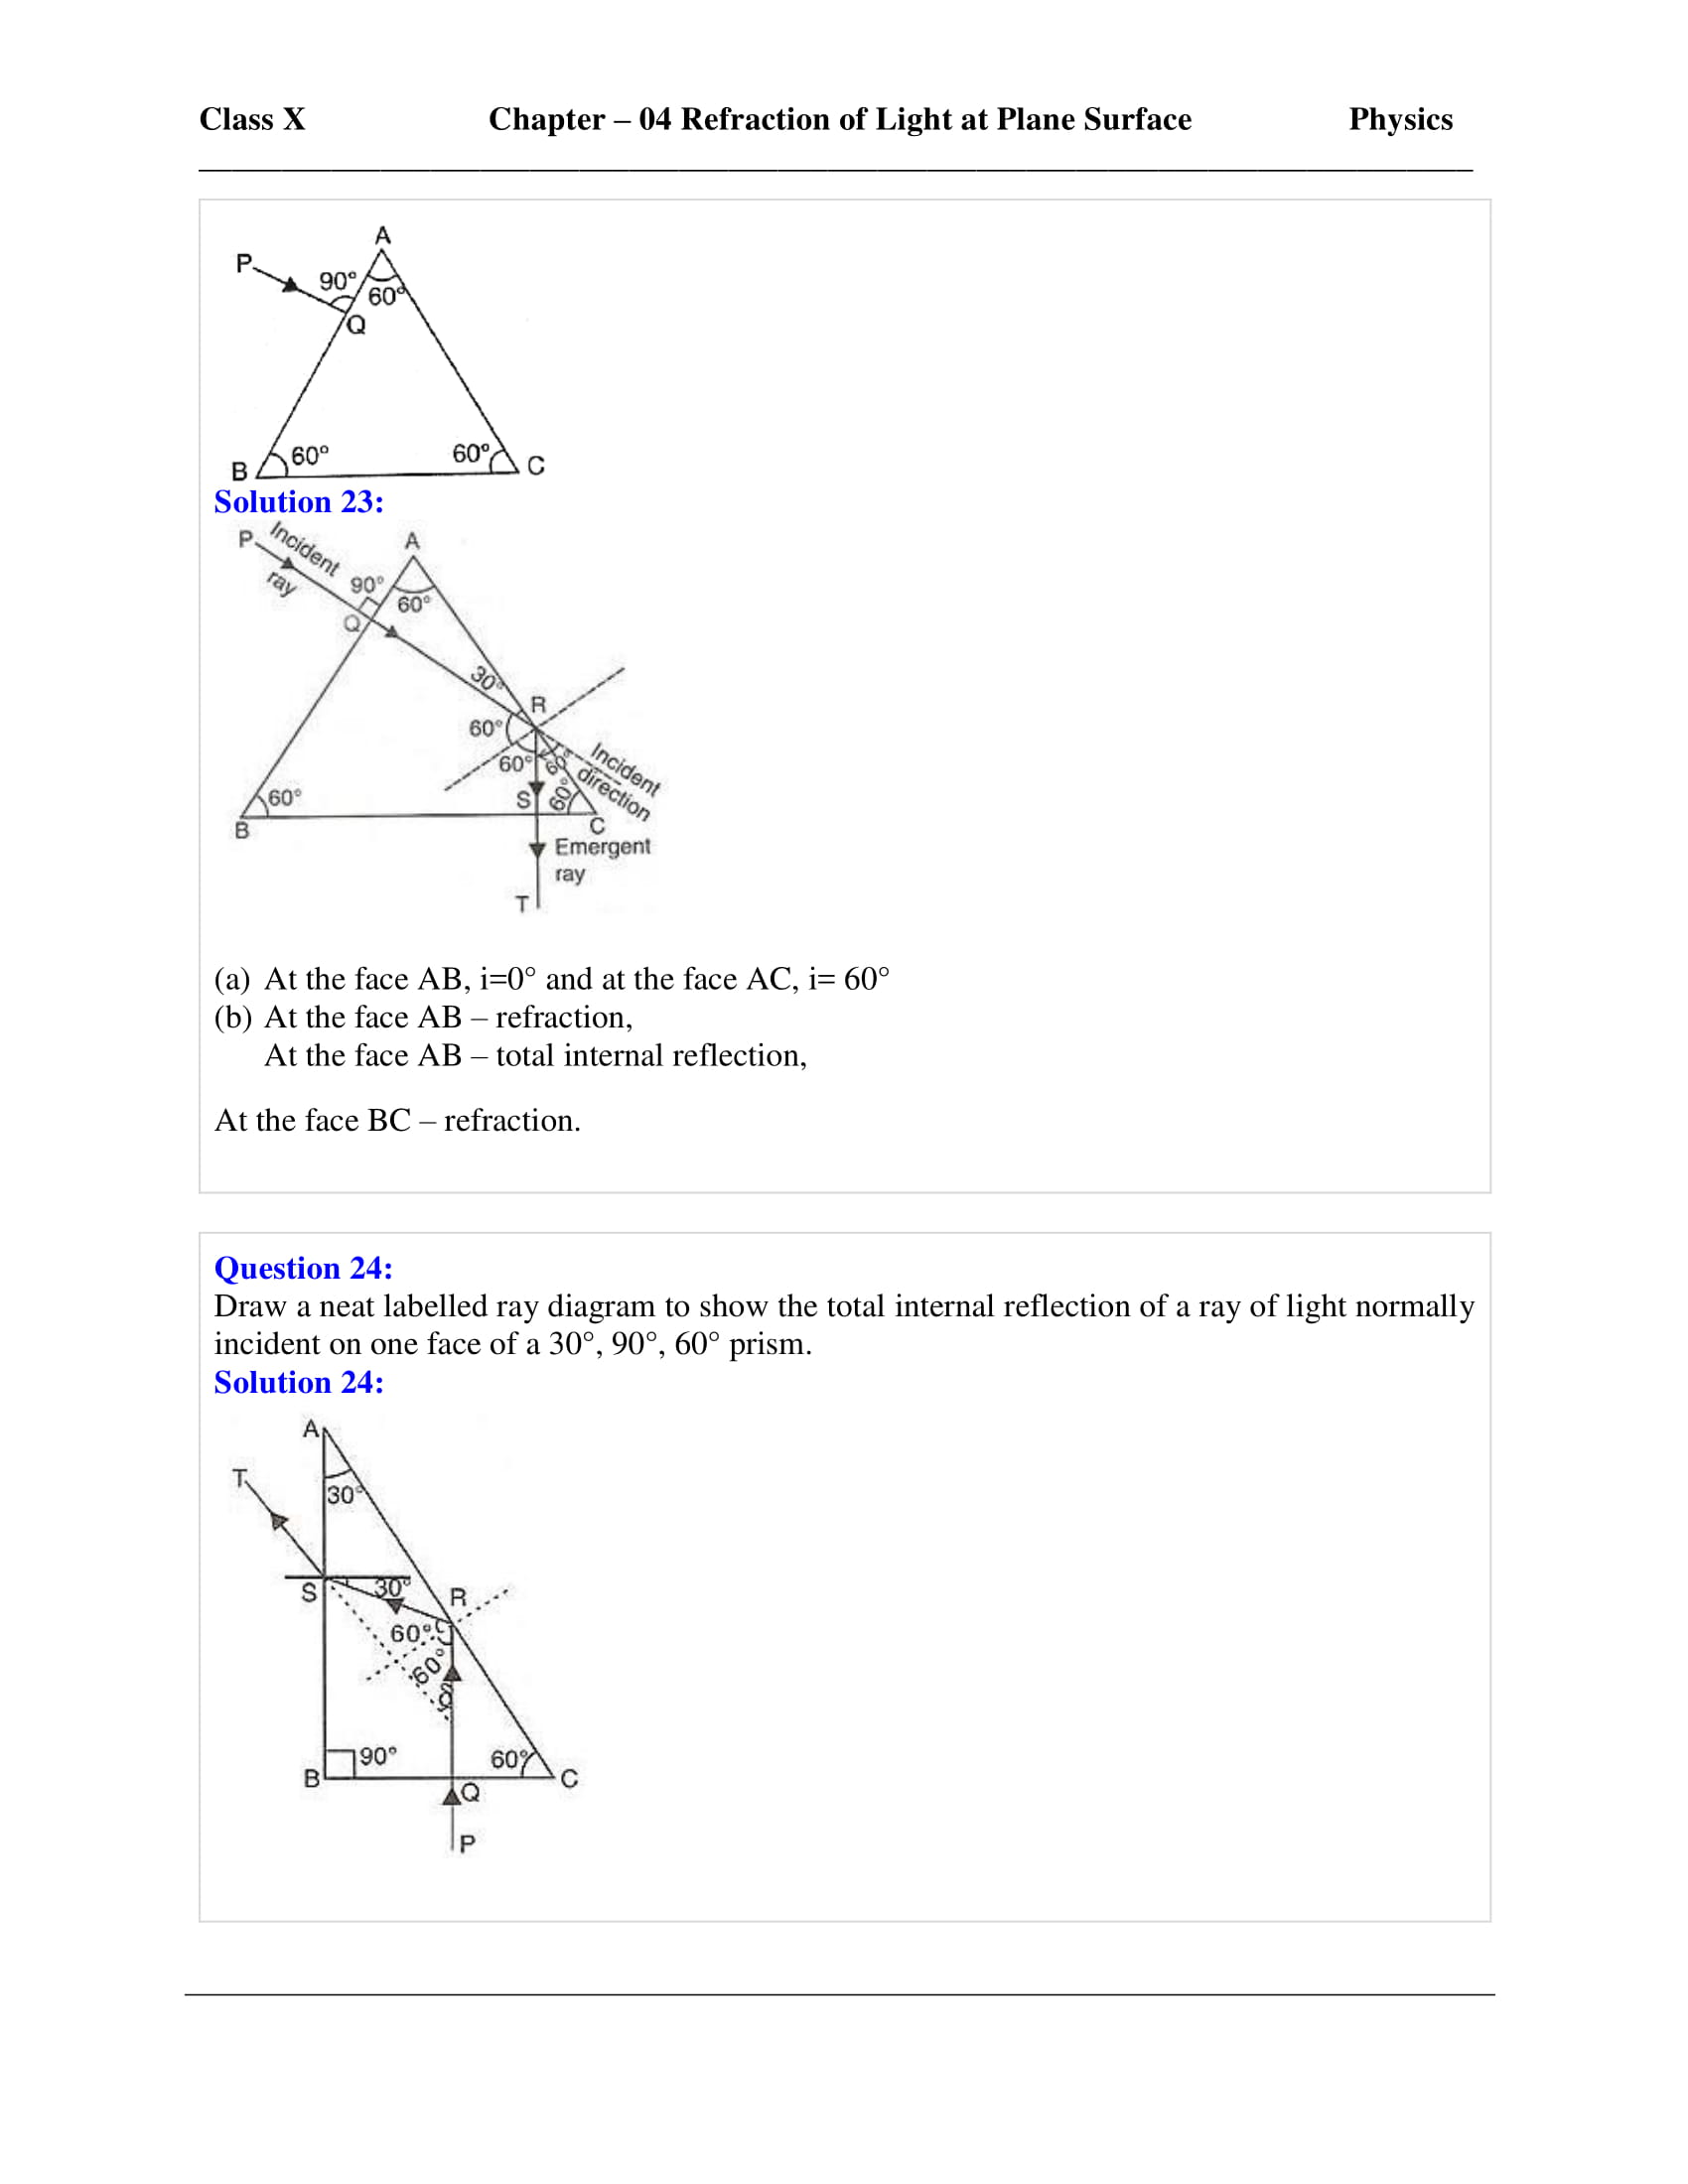 icse-selina-physics-solutions-class-10-chapter-4-refraction-of-light-at-plane-surfaces-37